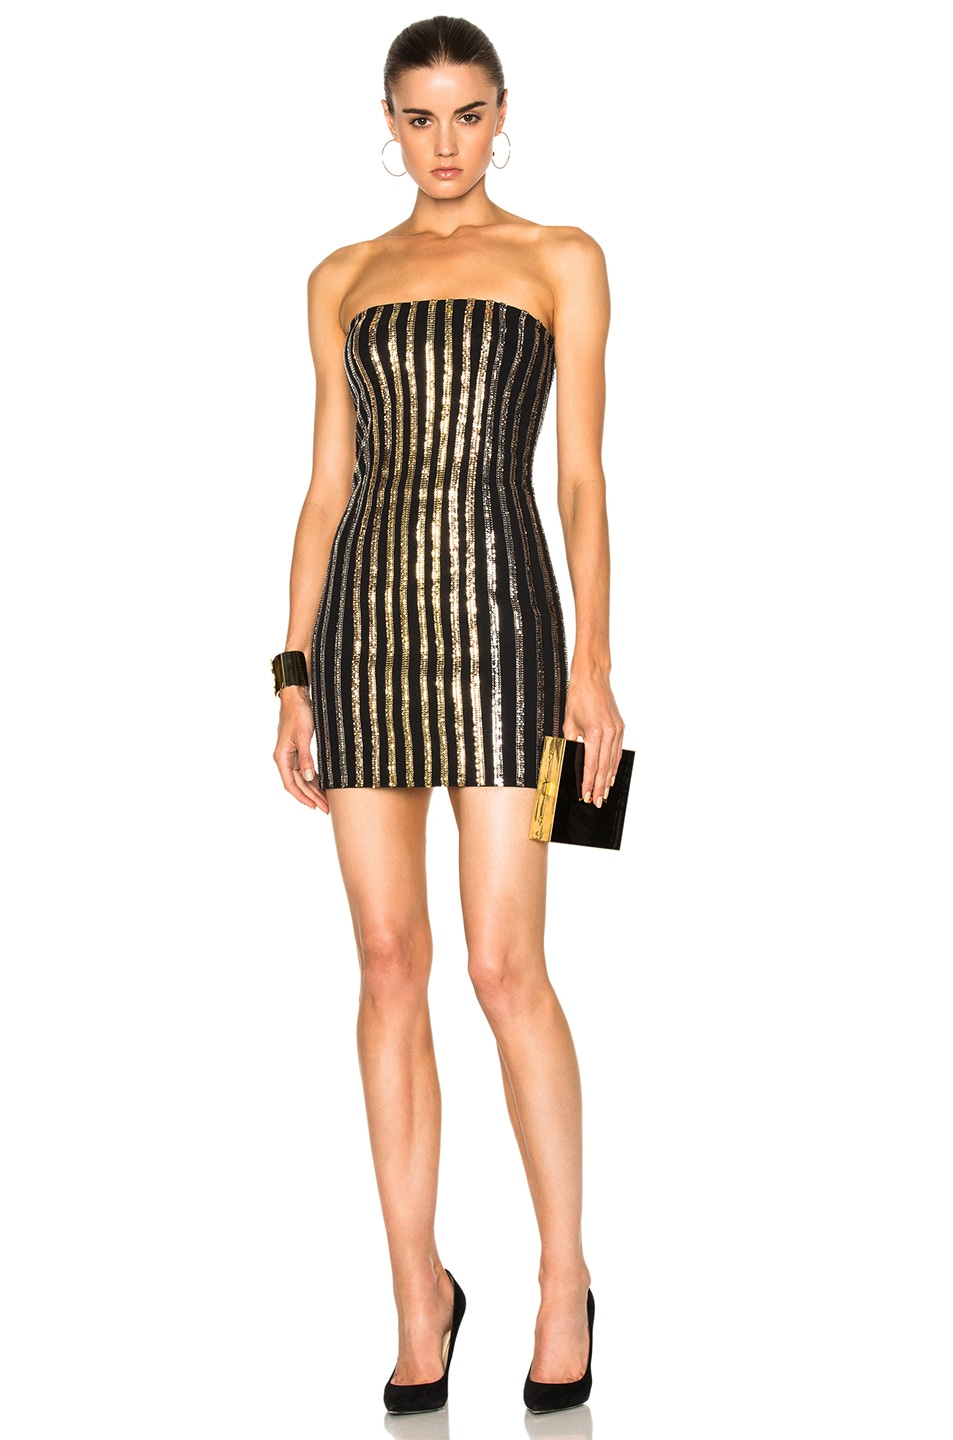 Balmain Strapless Sequin Mini Dress In Black Gold Silver Fwrd